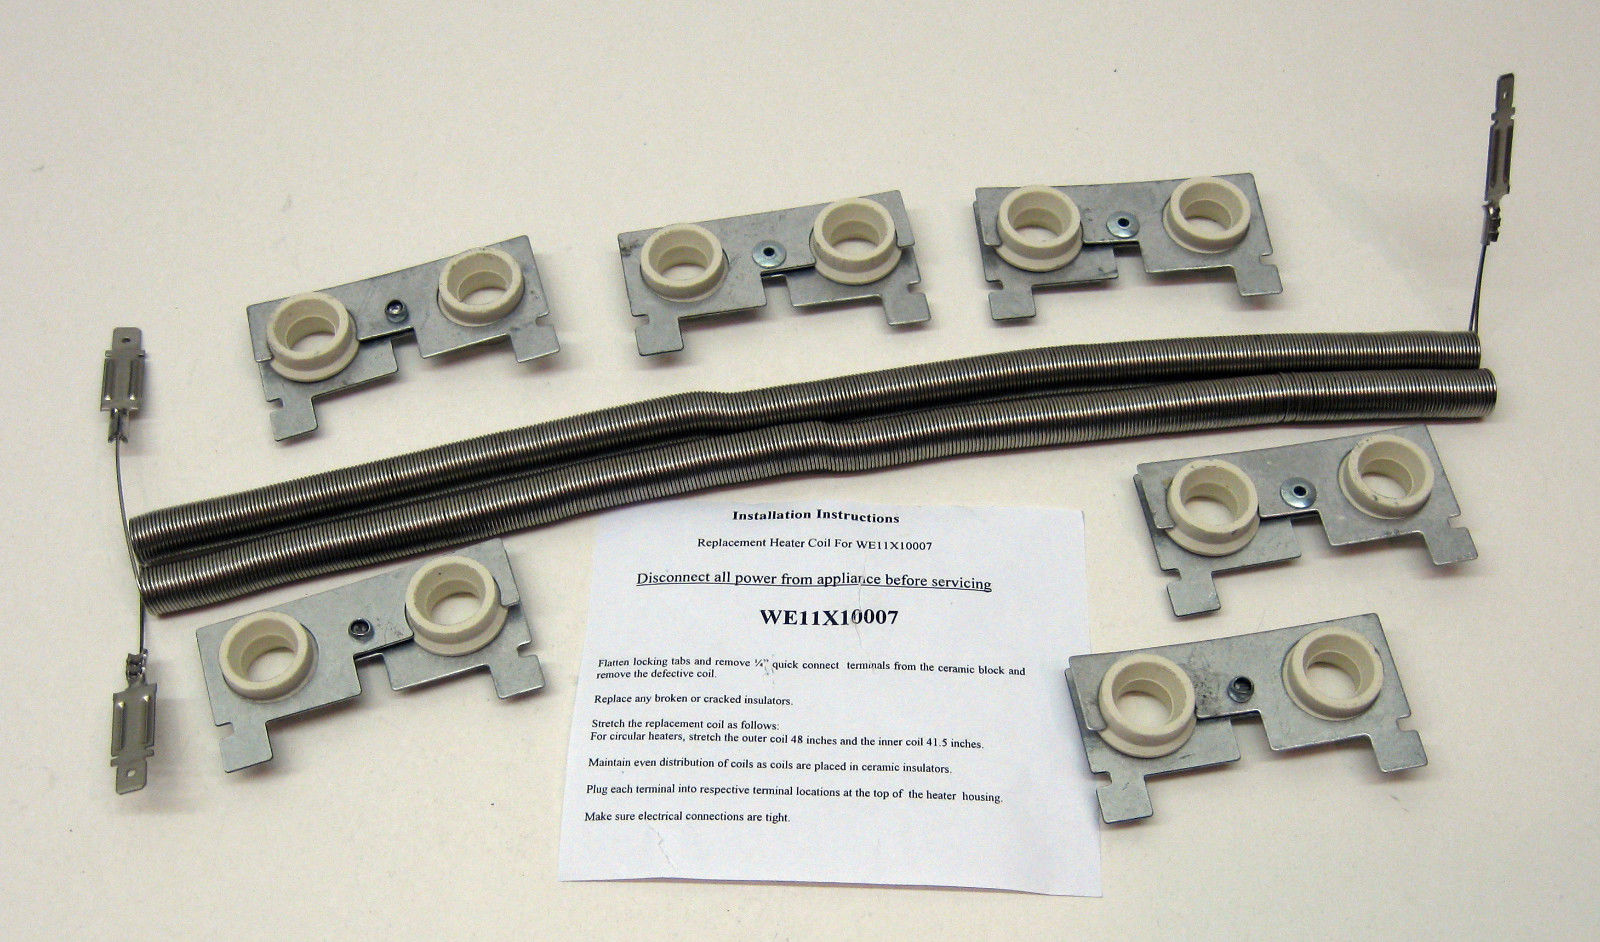 WE11X10007 for GE Dryer Heating Element Coils fits WE11M23